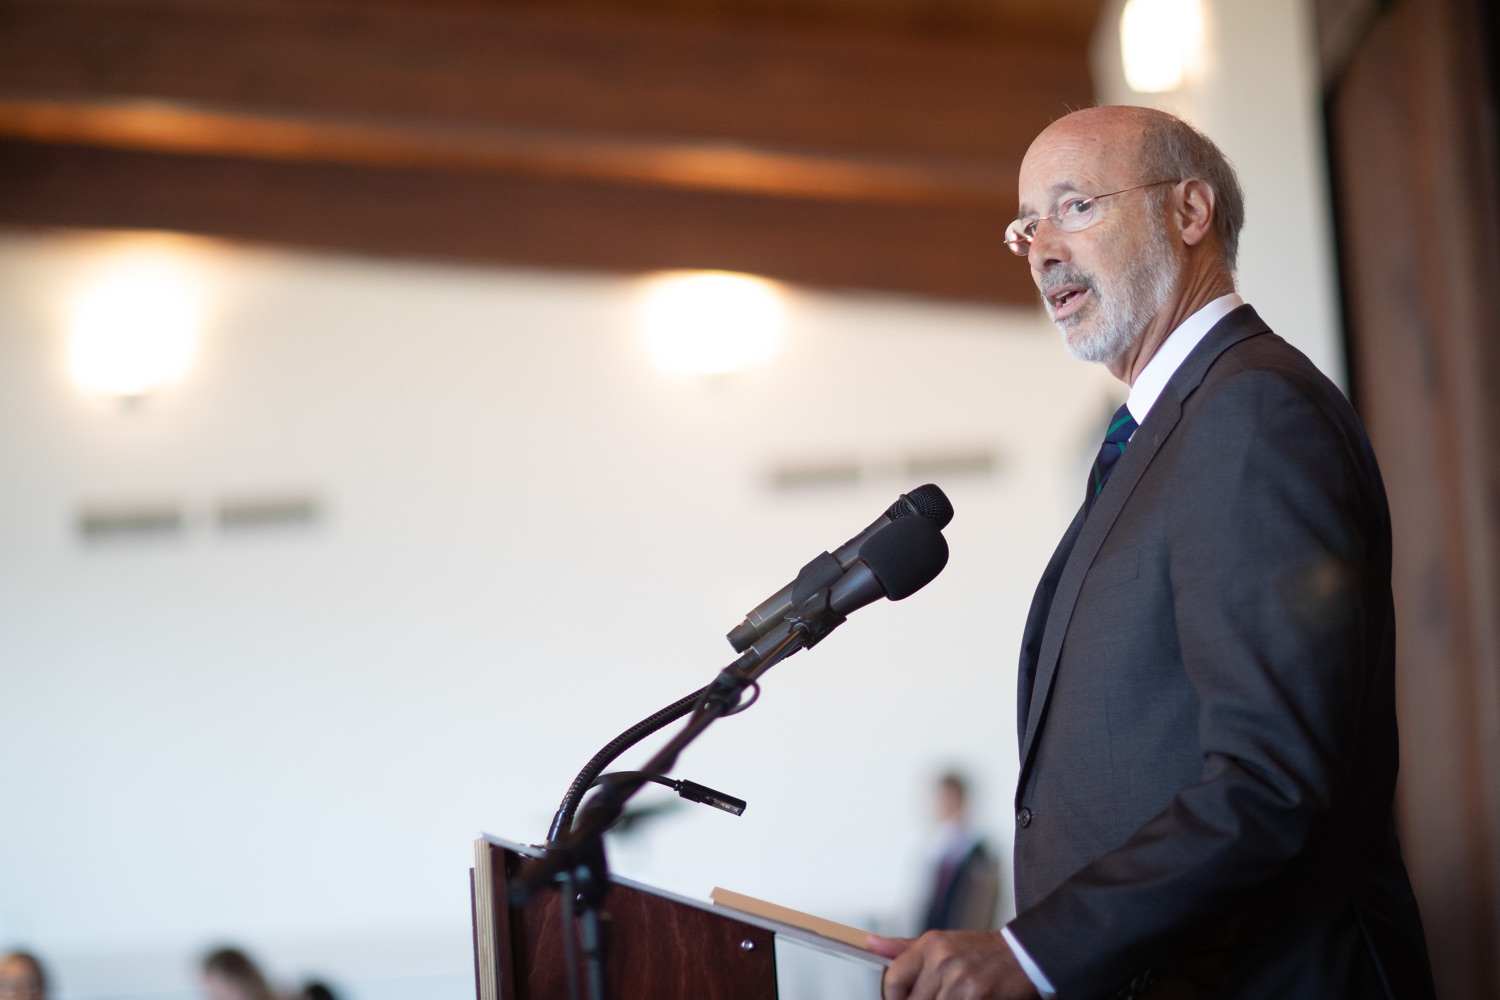 """<a href=""""https://filesource.wostreaming.net/commonwealthofpa/photo/17467_gov_opioids_dz_002.JPG"""" target=""""_blank"""">⇣Download Photo<br></a>Boalsburg, PA  Governor Tom Wolf addressing the summit. Governor Tom Wolf today kicked off his administrations first Opioid Command Center Opioid Summit: Think Globally, Act Locally, which brought together 200 individuals helping their communities fight the opioid crisis, including community organizations, non-profits, schools, health care workers, addiction and recovery specialists, and families affected by the opioid crisis.  Tuesday, October 1, 2019"""